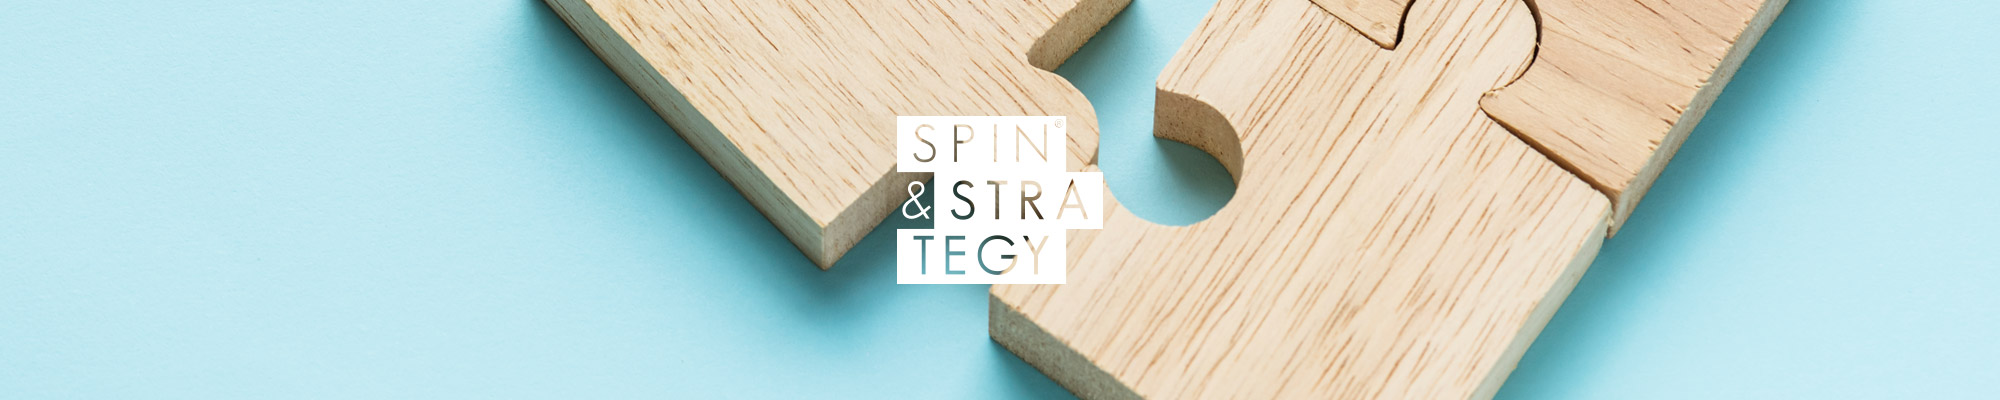 Spin & Strategy